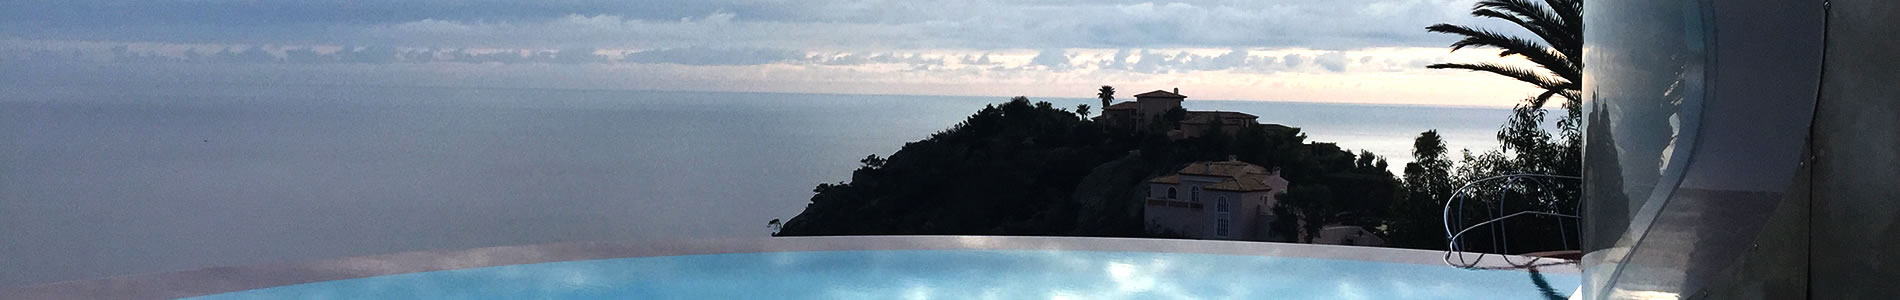 Extract from The Palais Bulles in balance between the sea and the sky